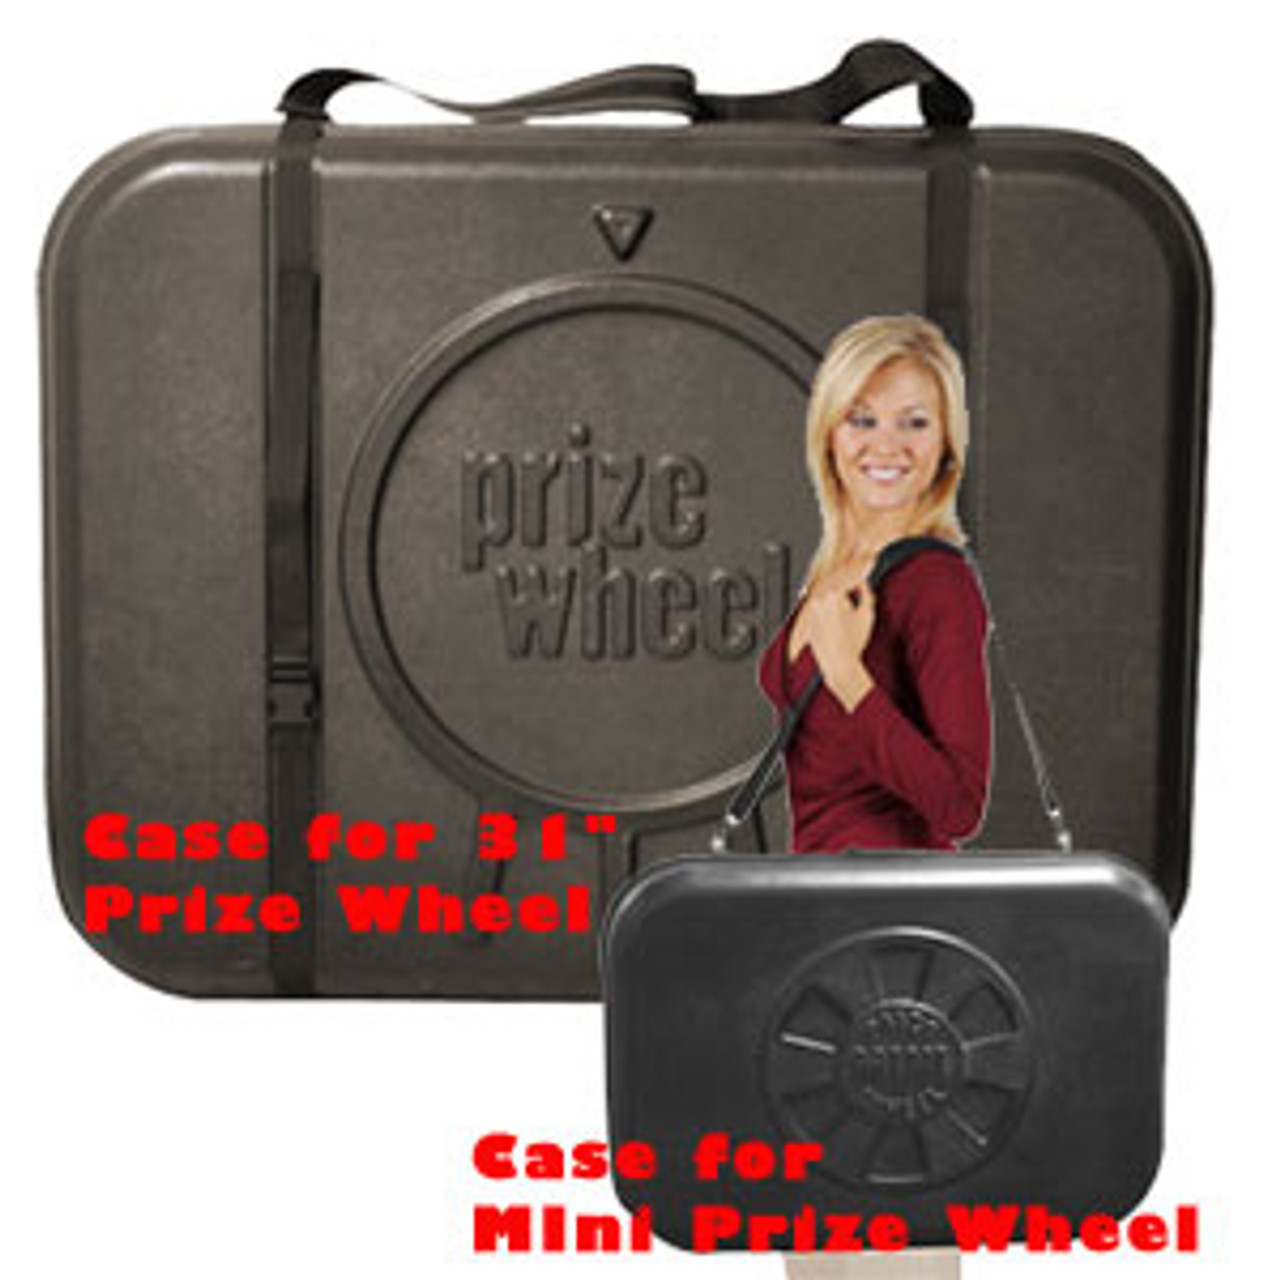 Travel Case for 31-inch Prize Wheel;  large and small cases